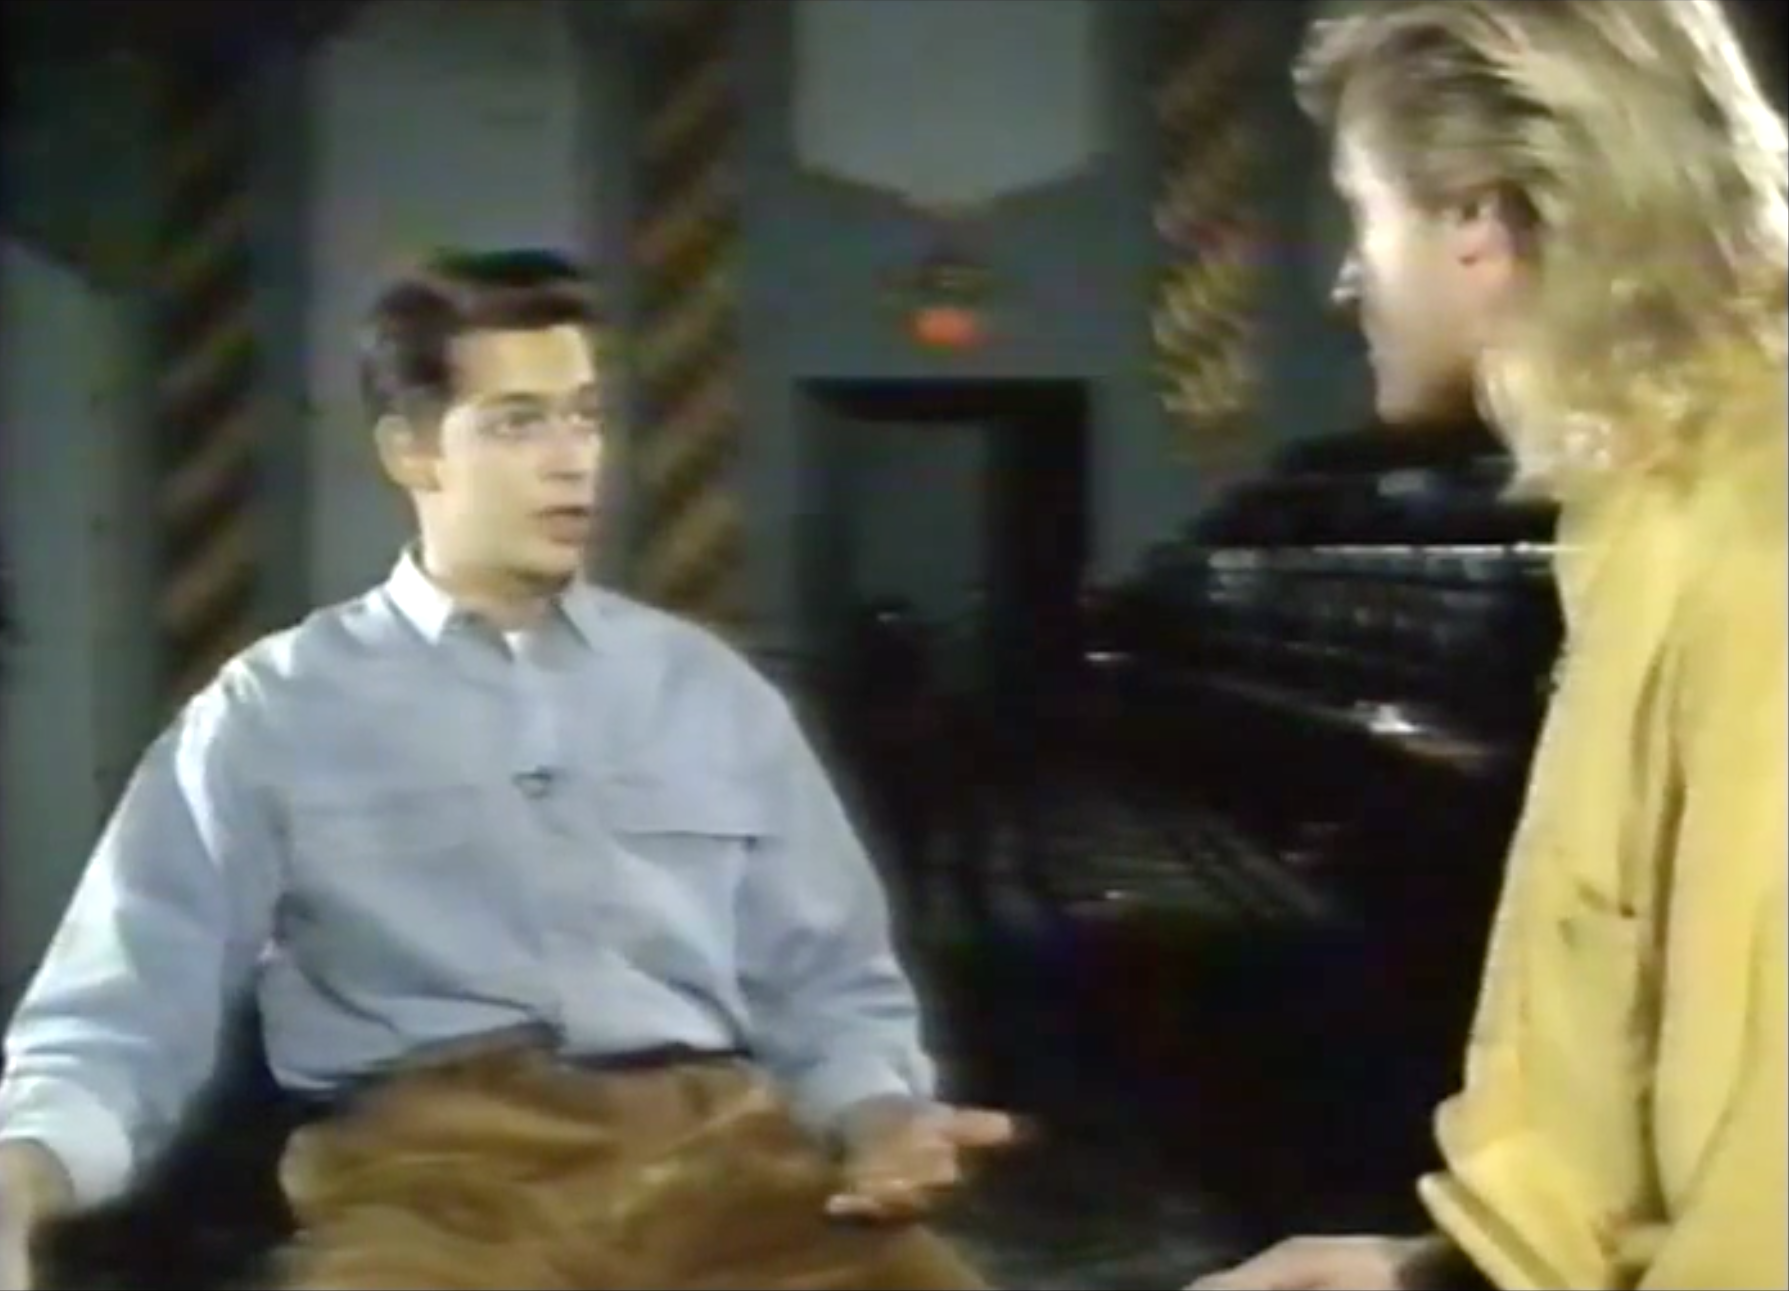 Not Ed Grimley, but Harry Connick, Jr. in his first TV special on the Family Channel in 1991- the long-haired hippie freak is Jim.